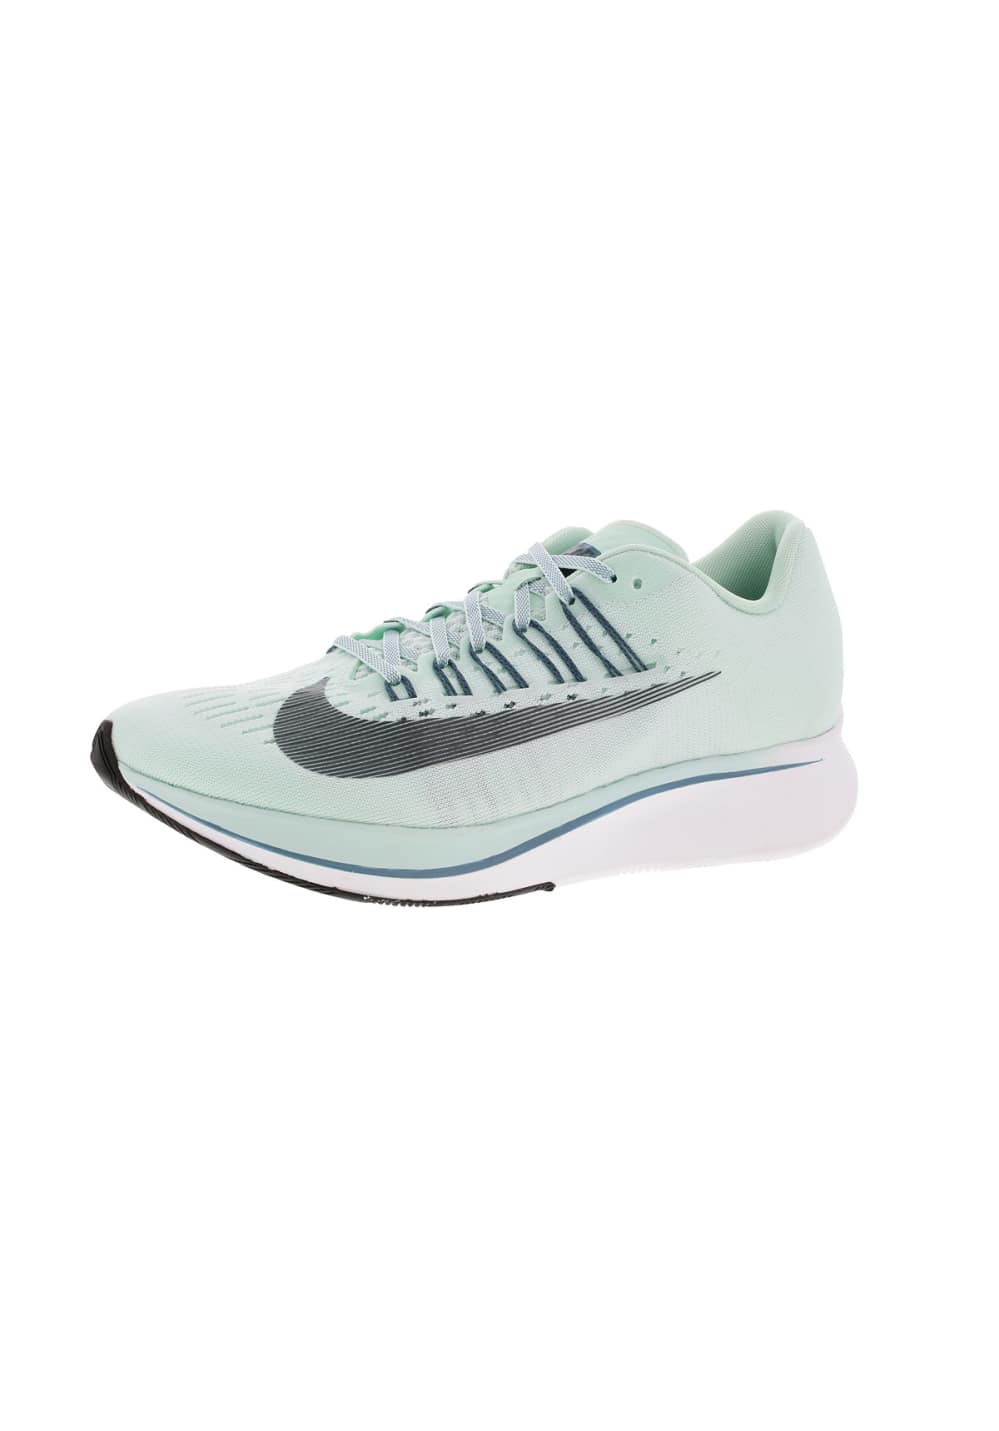 new arrival ca8f9 a923c Next. -60%. Nike. Zoom Fly - Running shoes for Women